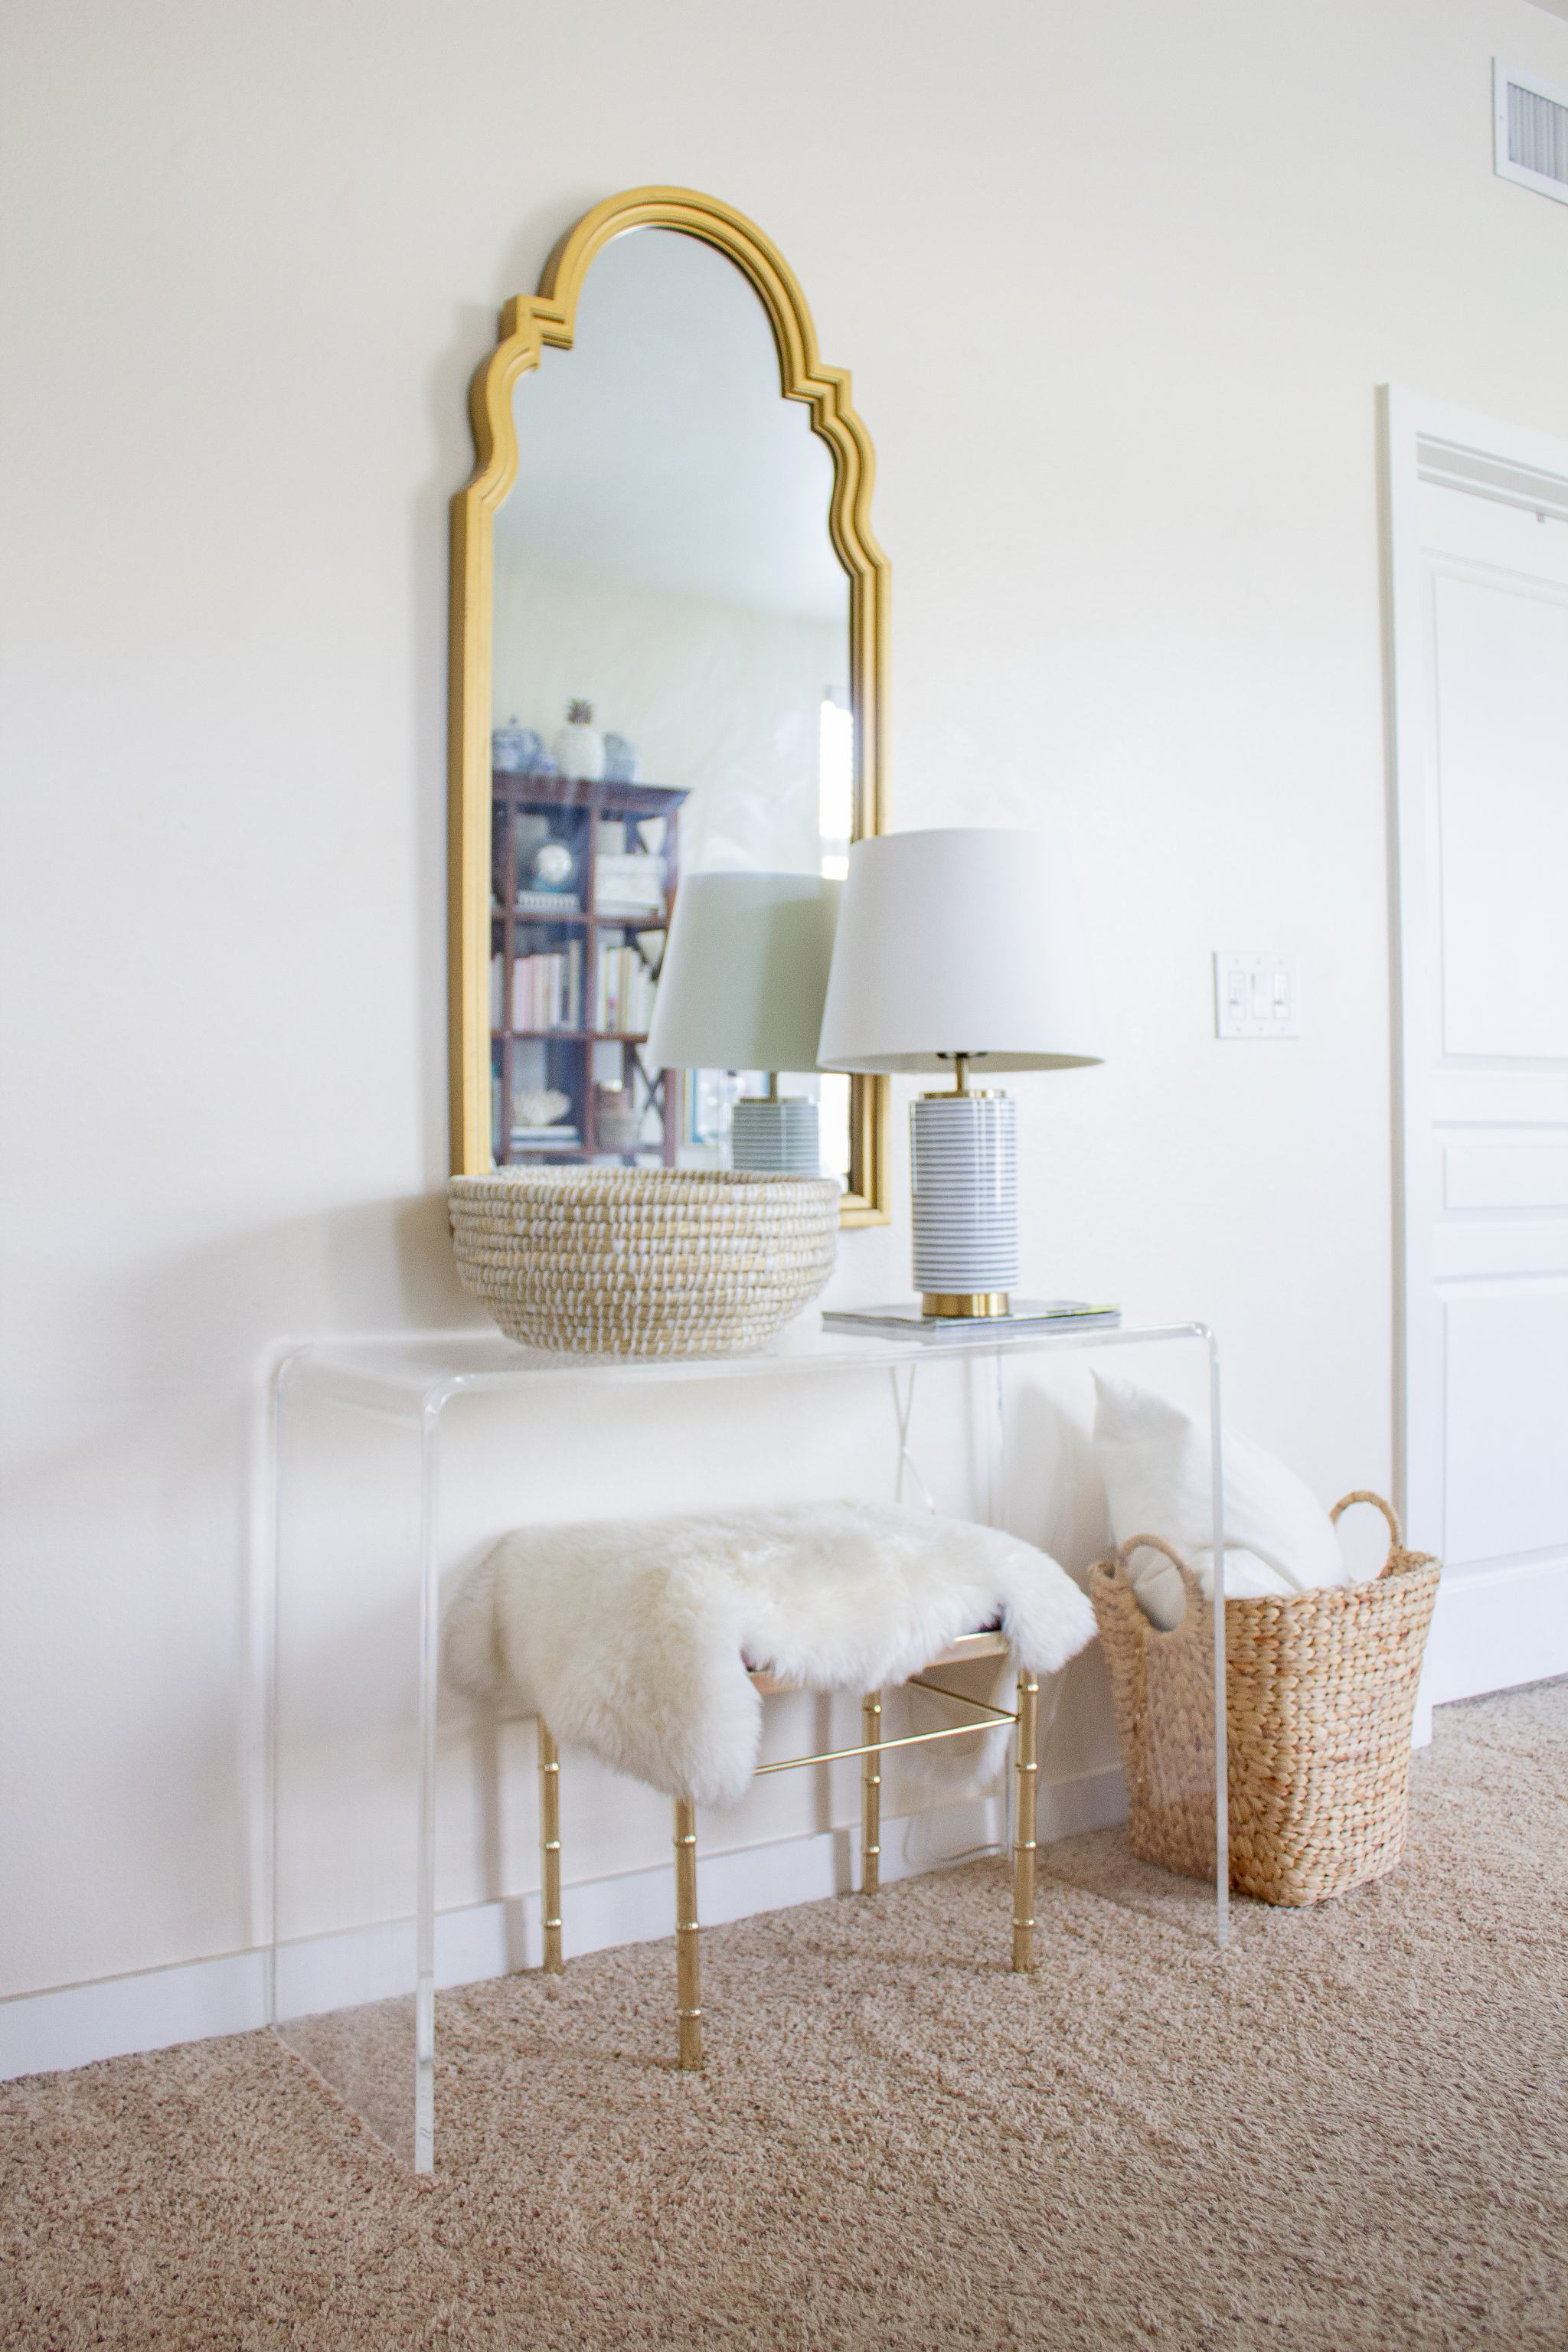 queen anne mirror - acrylic table - peekaboo table - lucite console table - brass faux bamboo stool - blue and white striped lamp - woven bowl basket